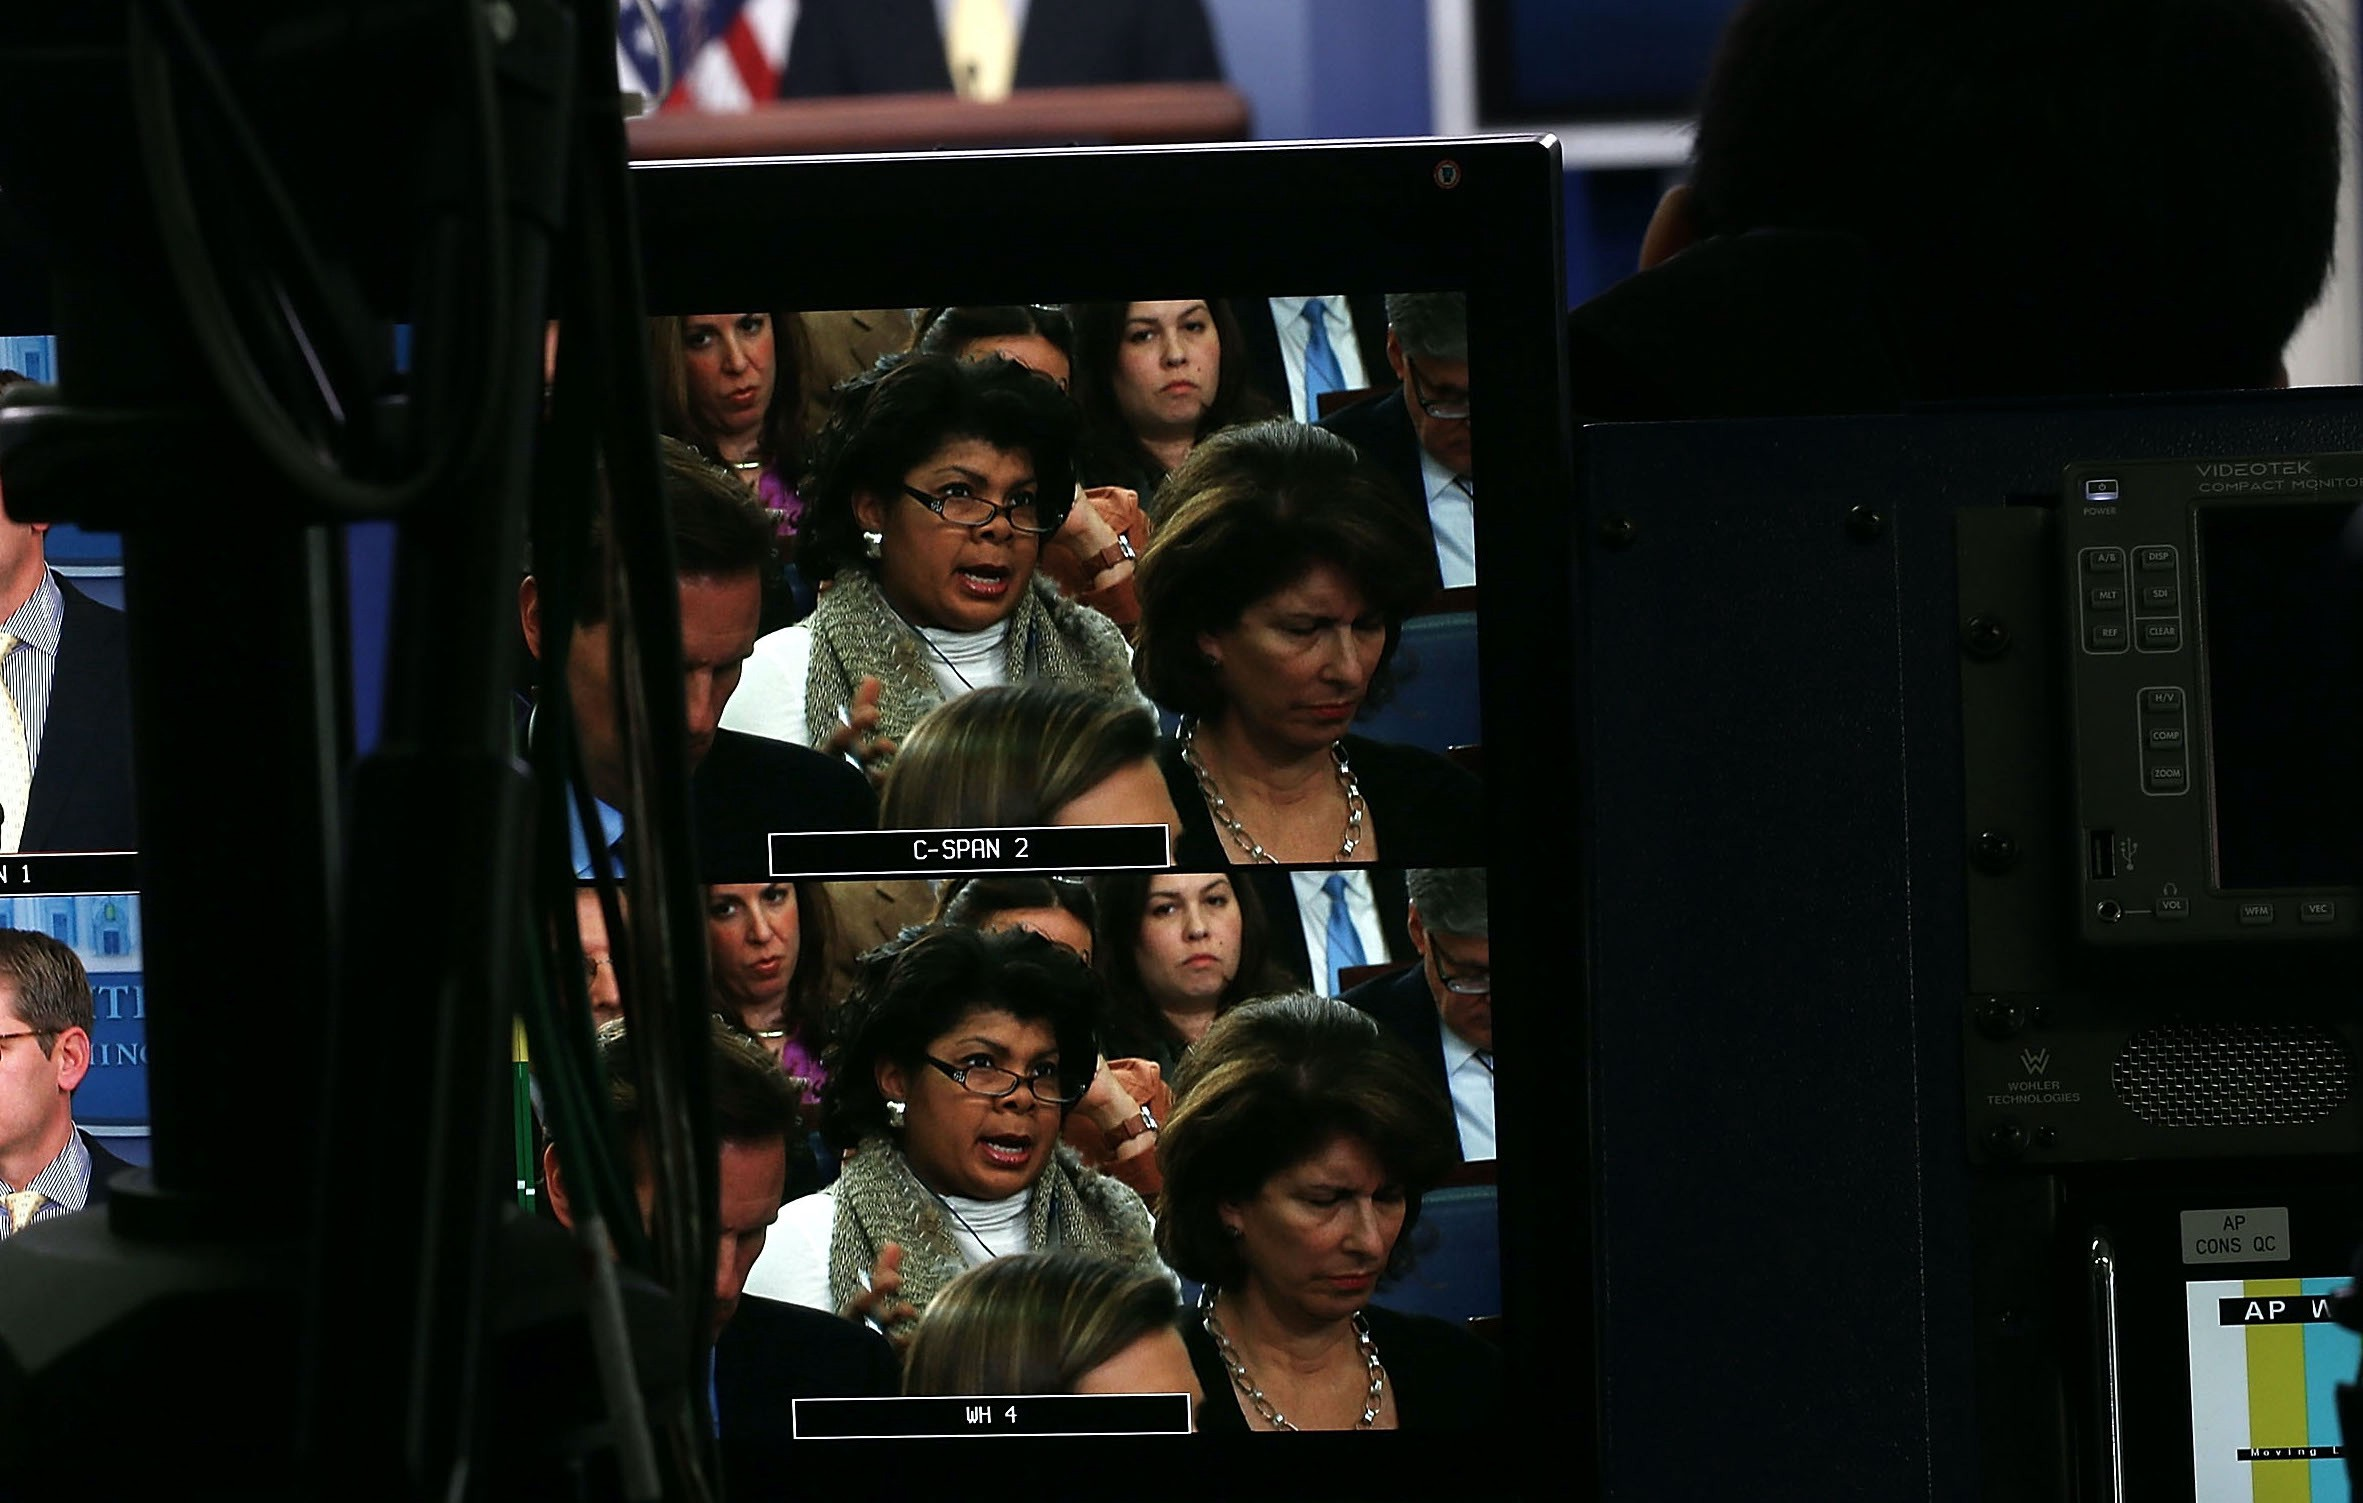 April Ryan, seen on a TV monitor, asking questions in the White House press briefing room.